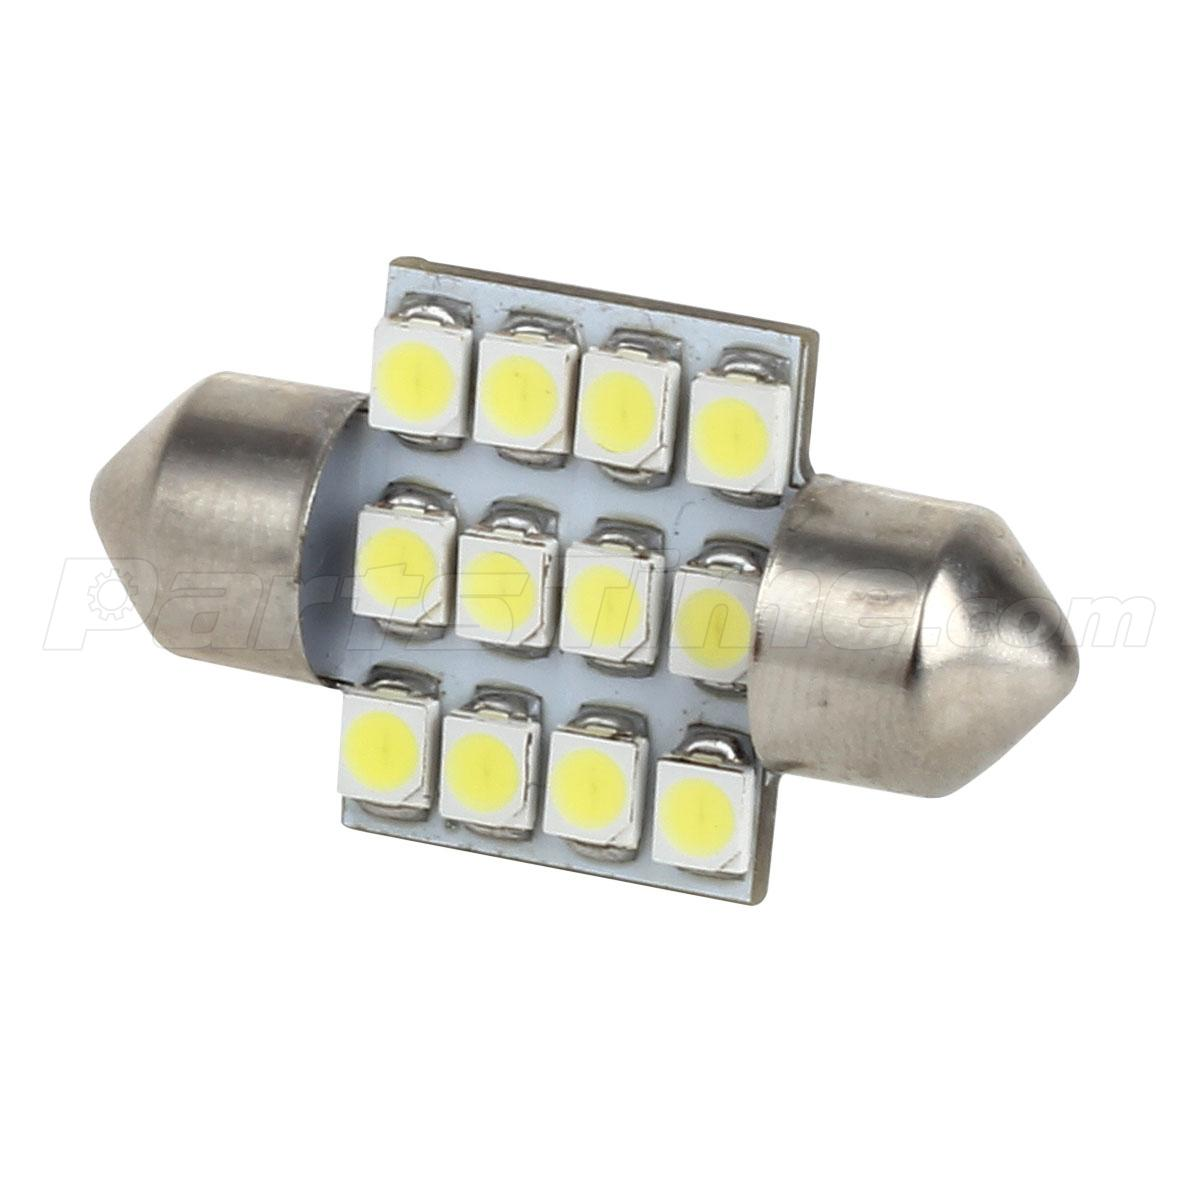 4x white 12smd de3175 led bulbs for car interior dome map lights 12v. Black Bedroom Furniture Sets. Home Design Ideas